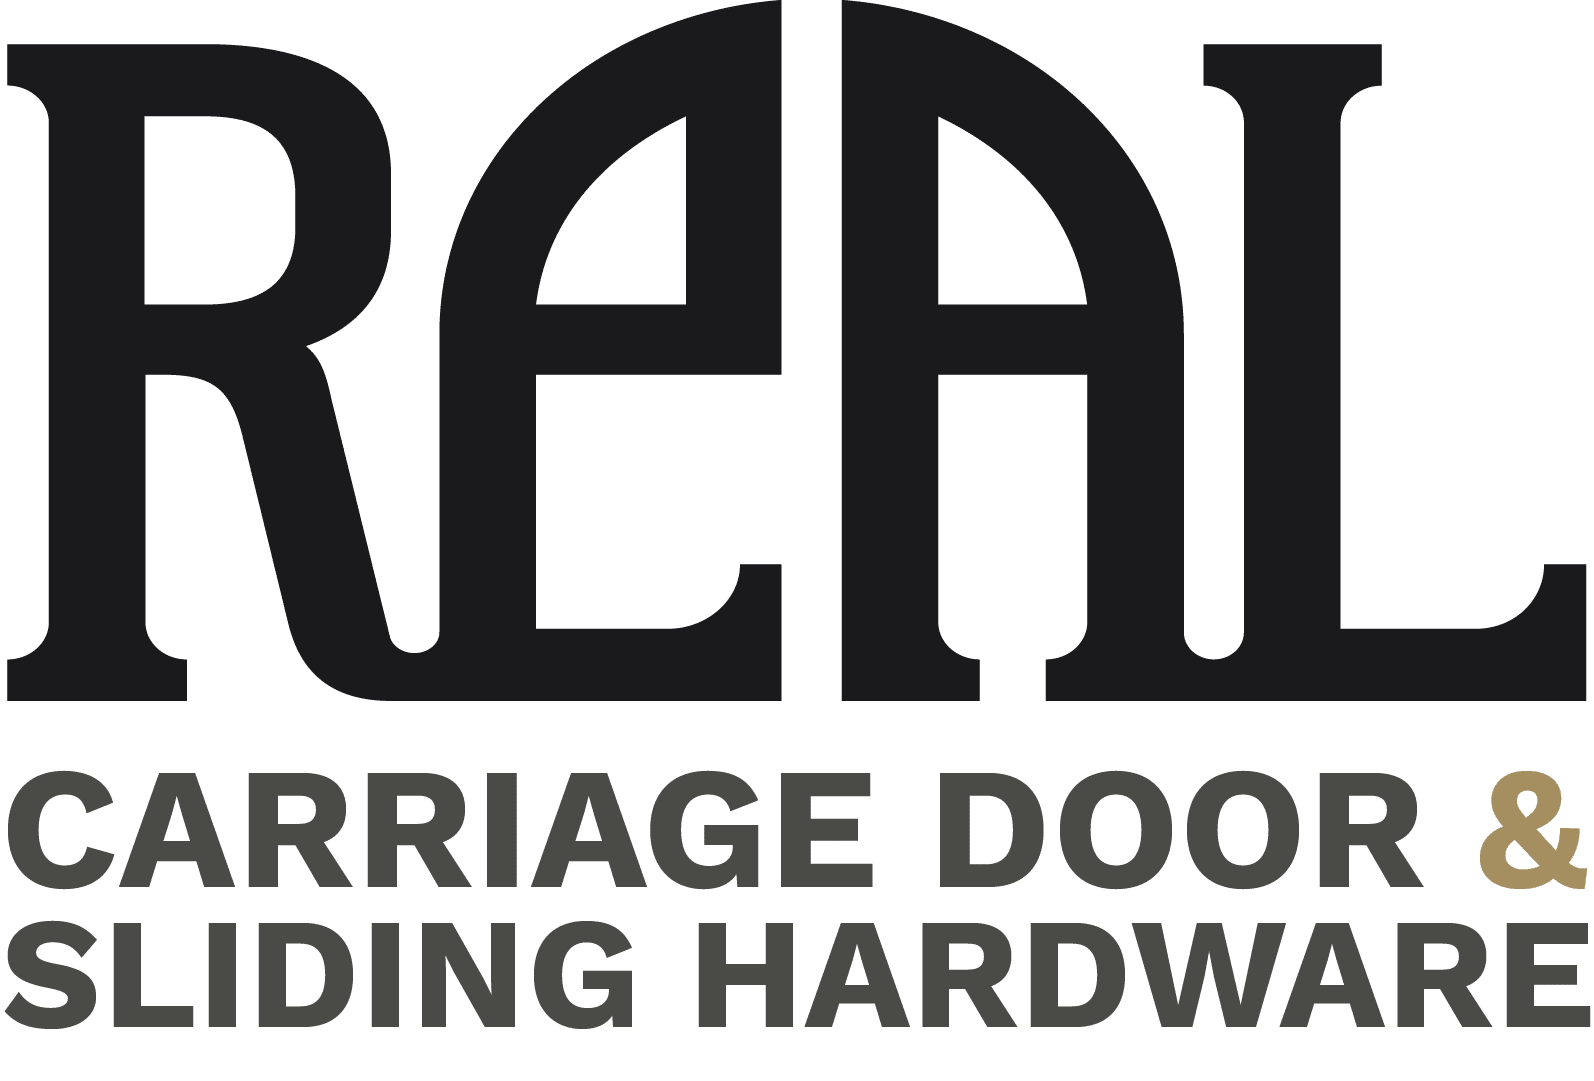 Real Carriage Door Company